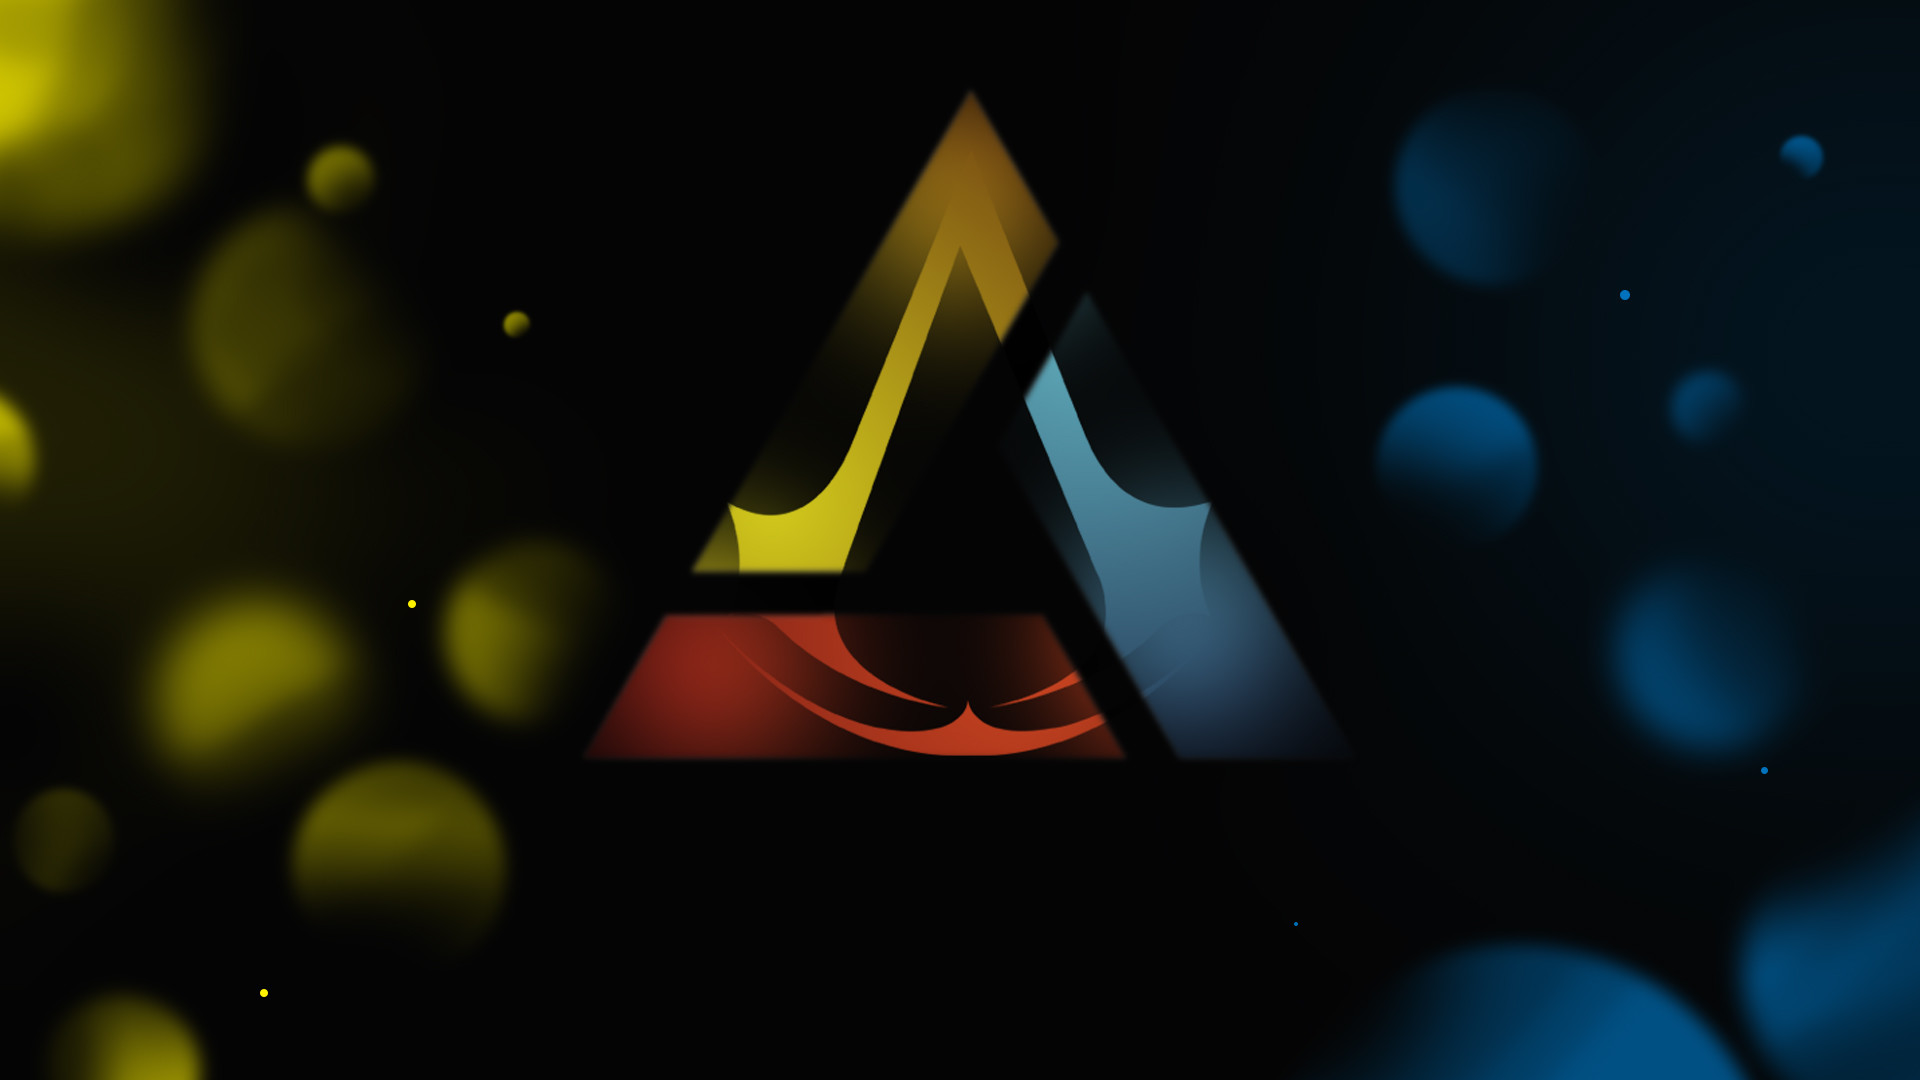 Abstergo wallpaper hd 75 images for Assassin s creed sfondi